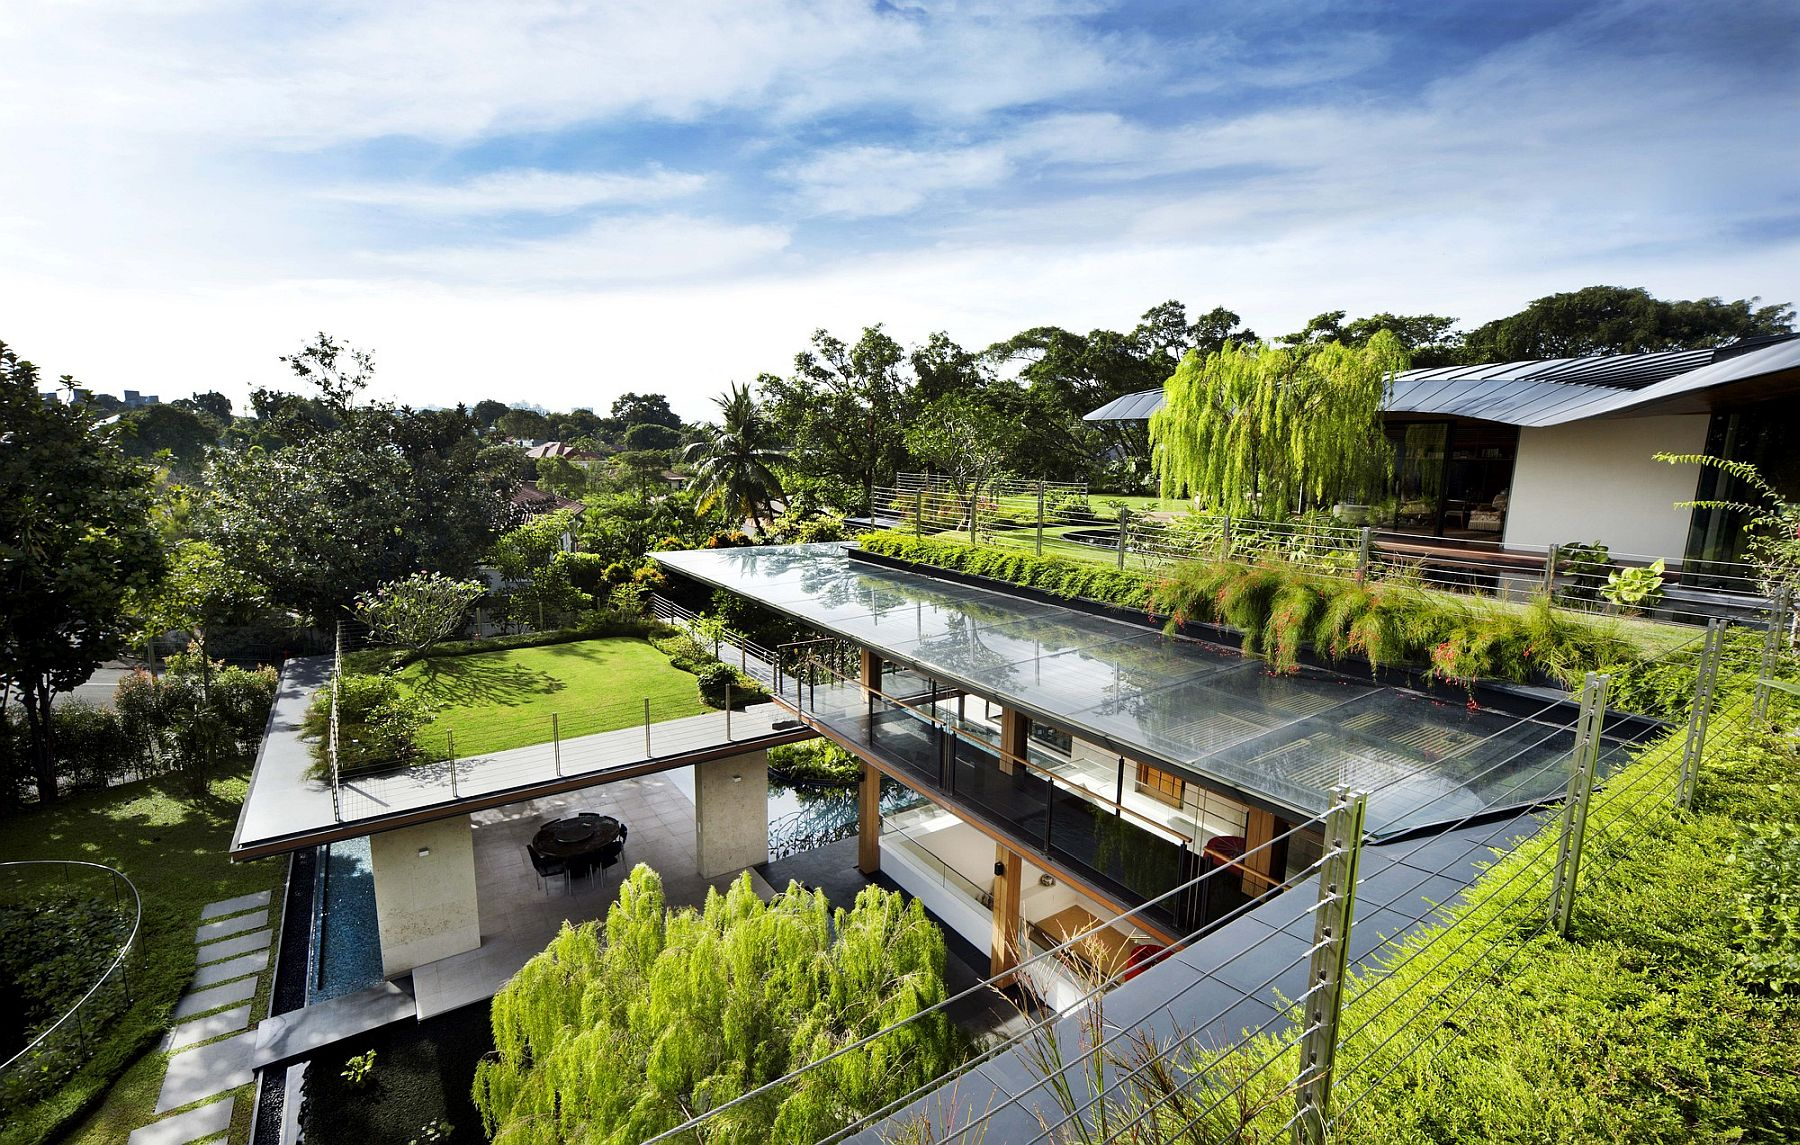 Roof Gardens Bio Pond And A World Of Inviting Green